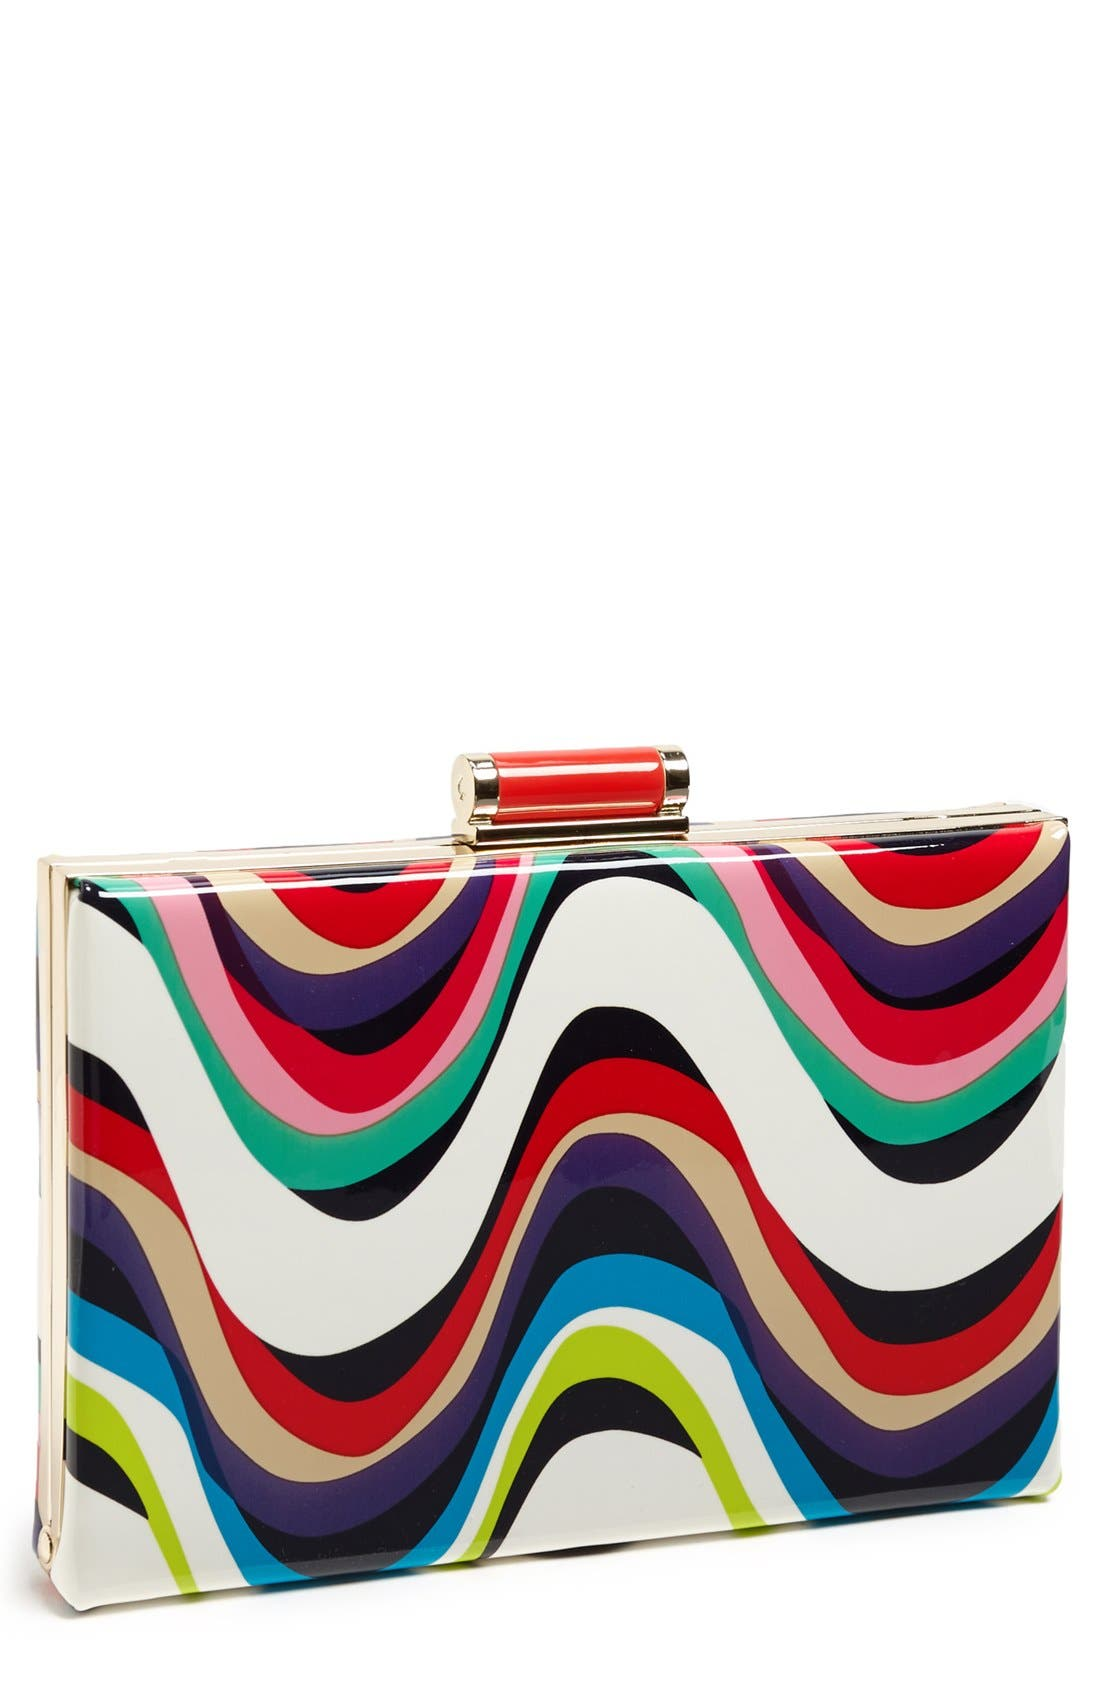 Main Image - kate spade new york 'miss penny's - emanuelle' frame clutch